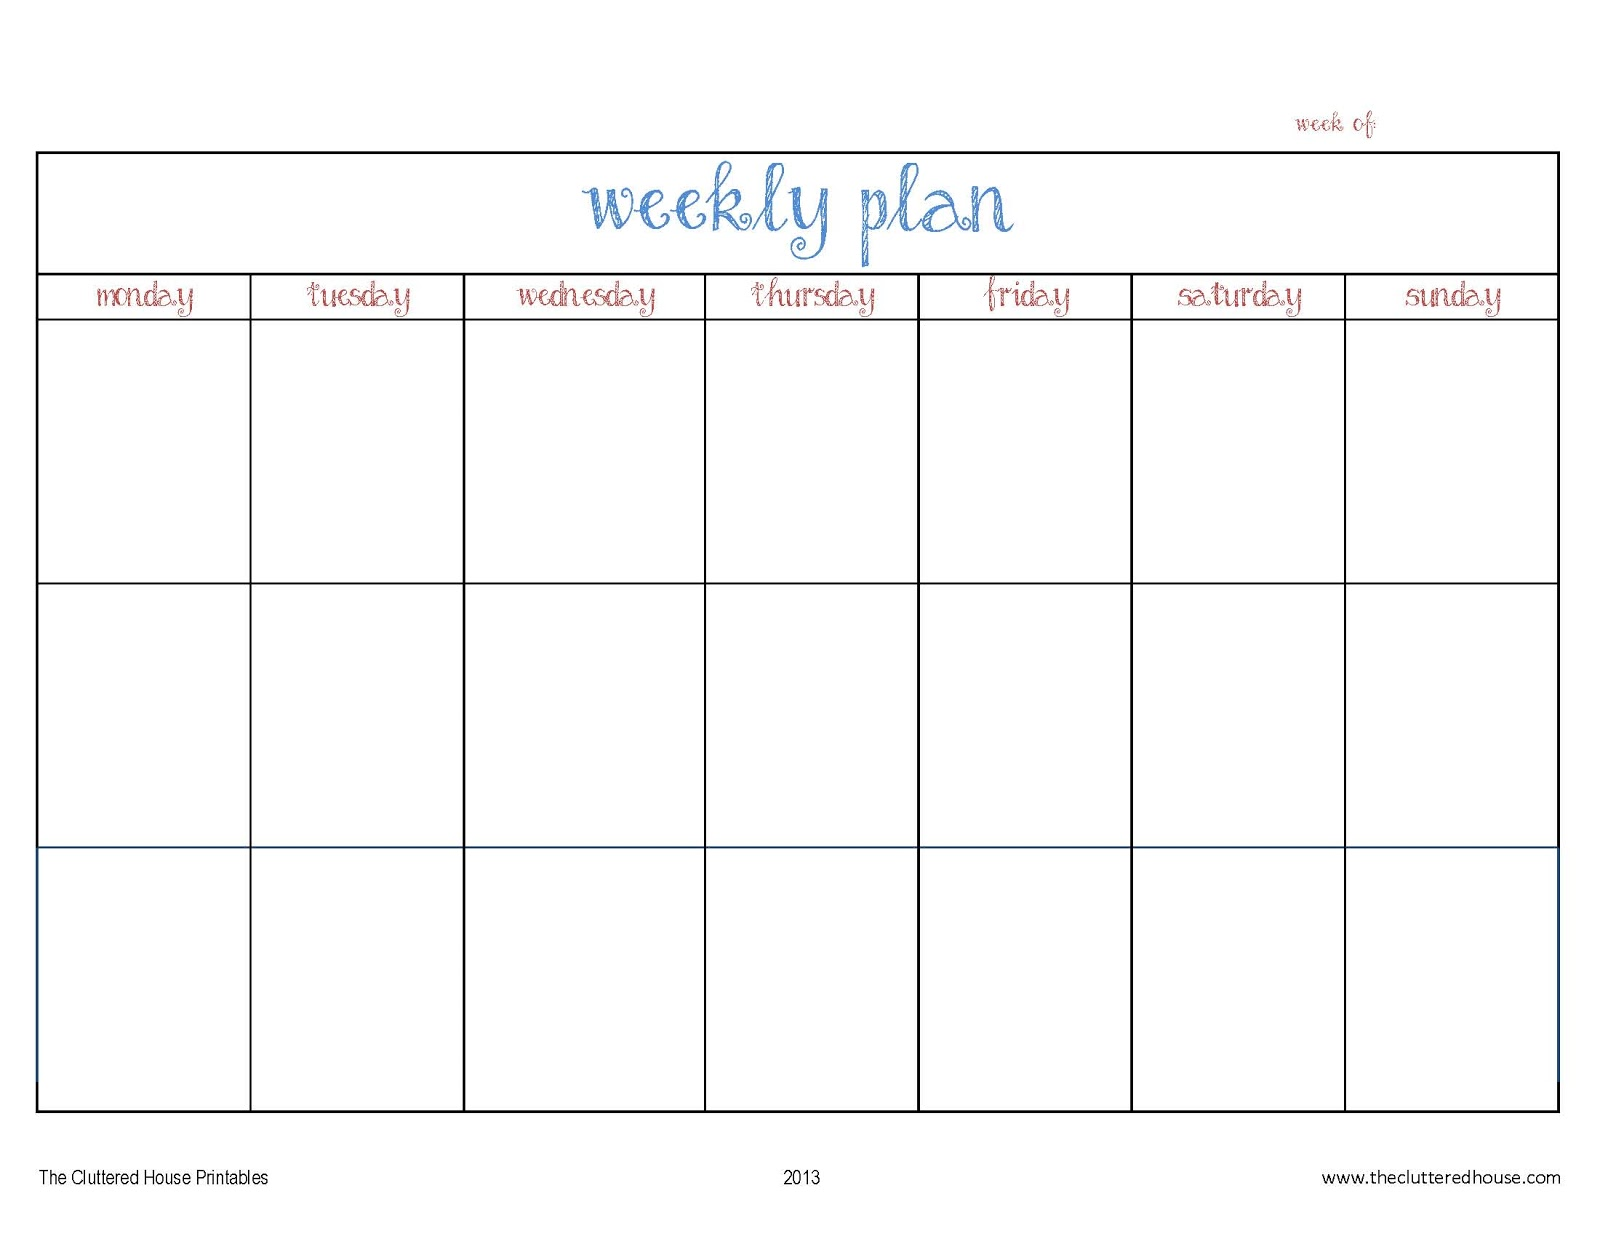 One Week Planner Template the cluttered house printable it s – Template for Weekly Planner